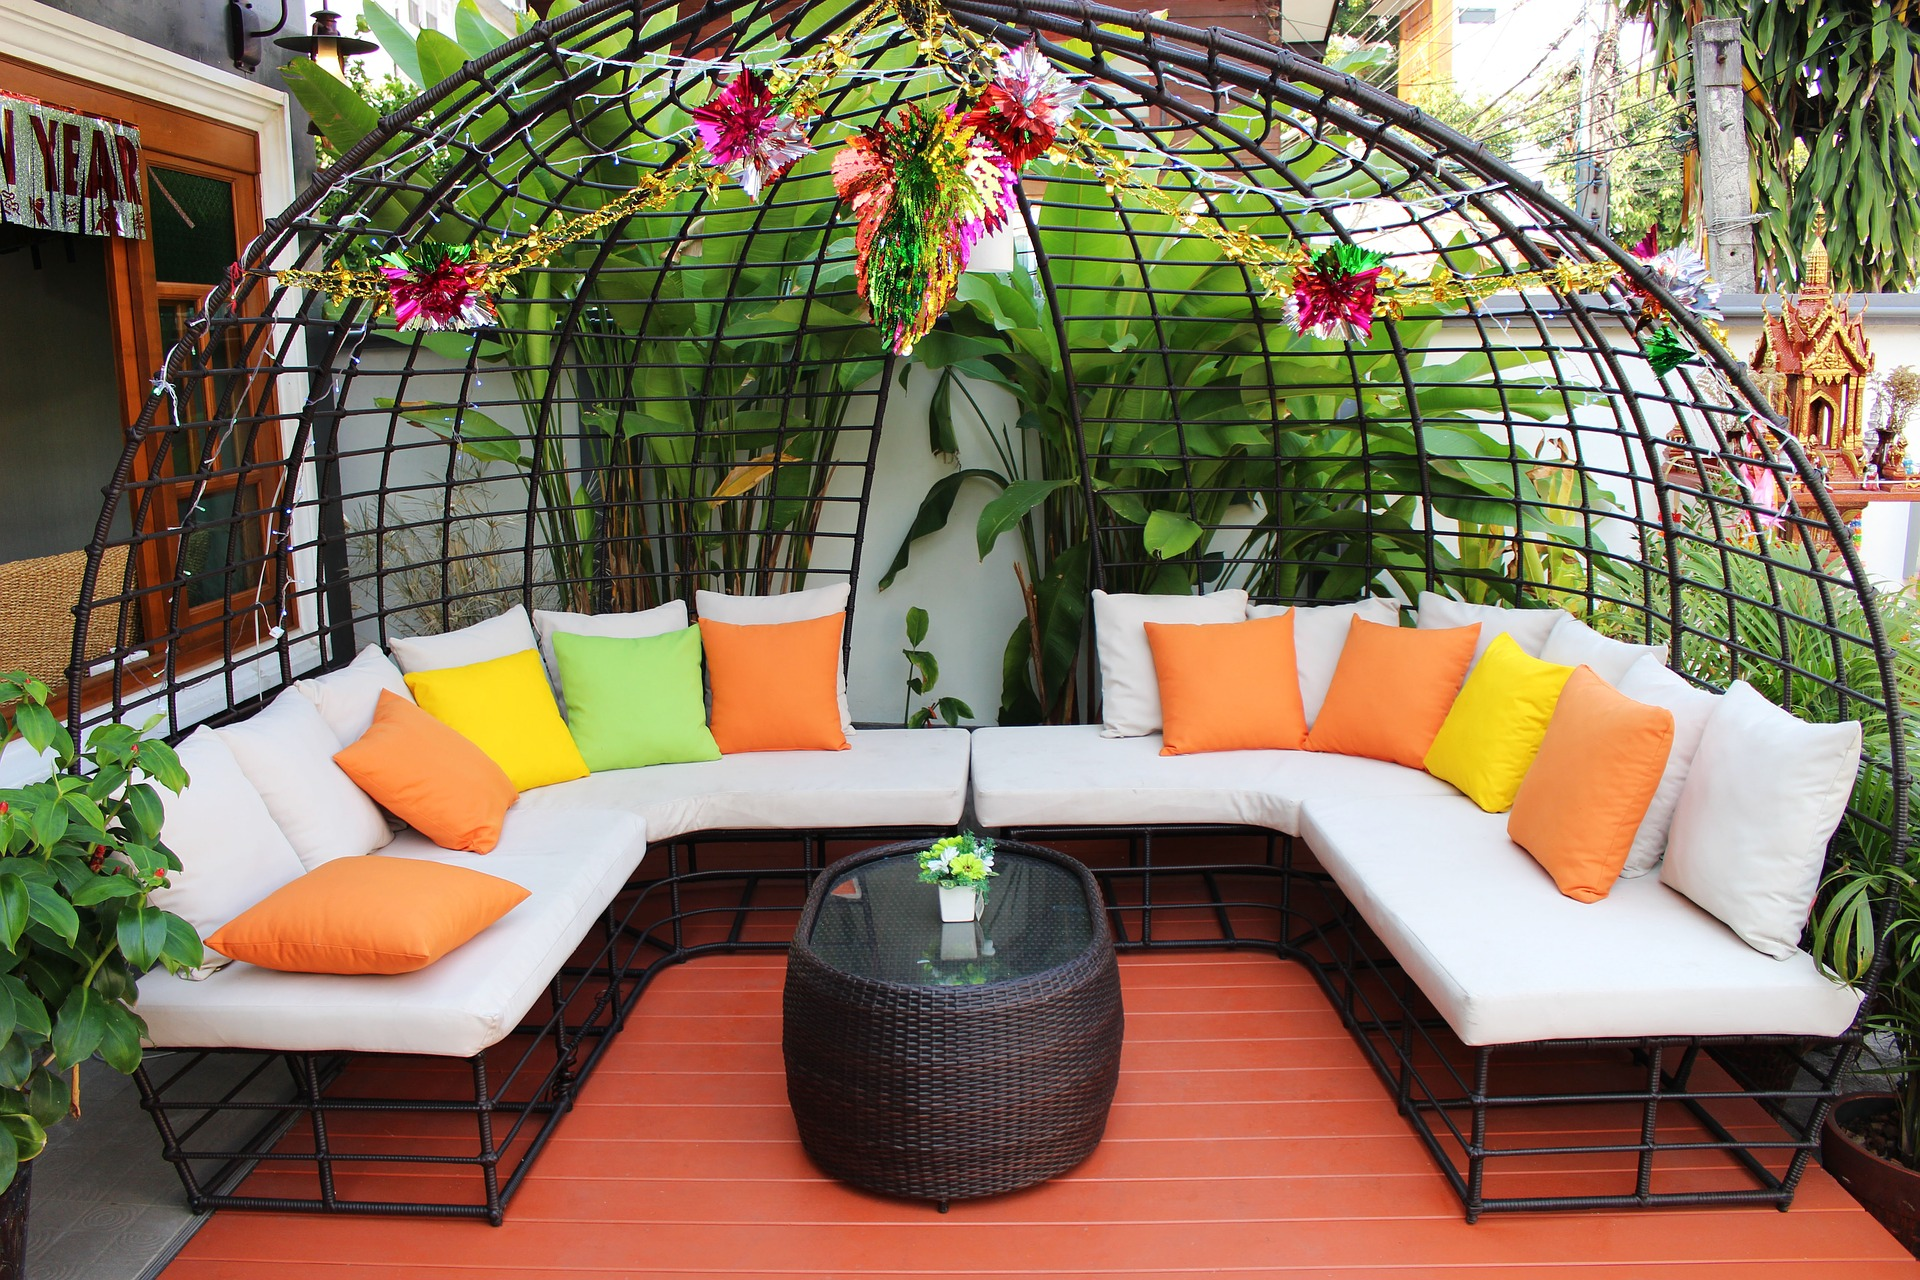 deck htm remarkable ideas patio decorating design decor home interior and images designs or within for backyard